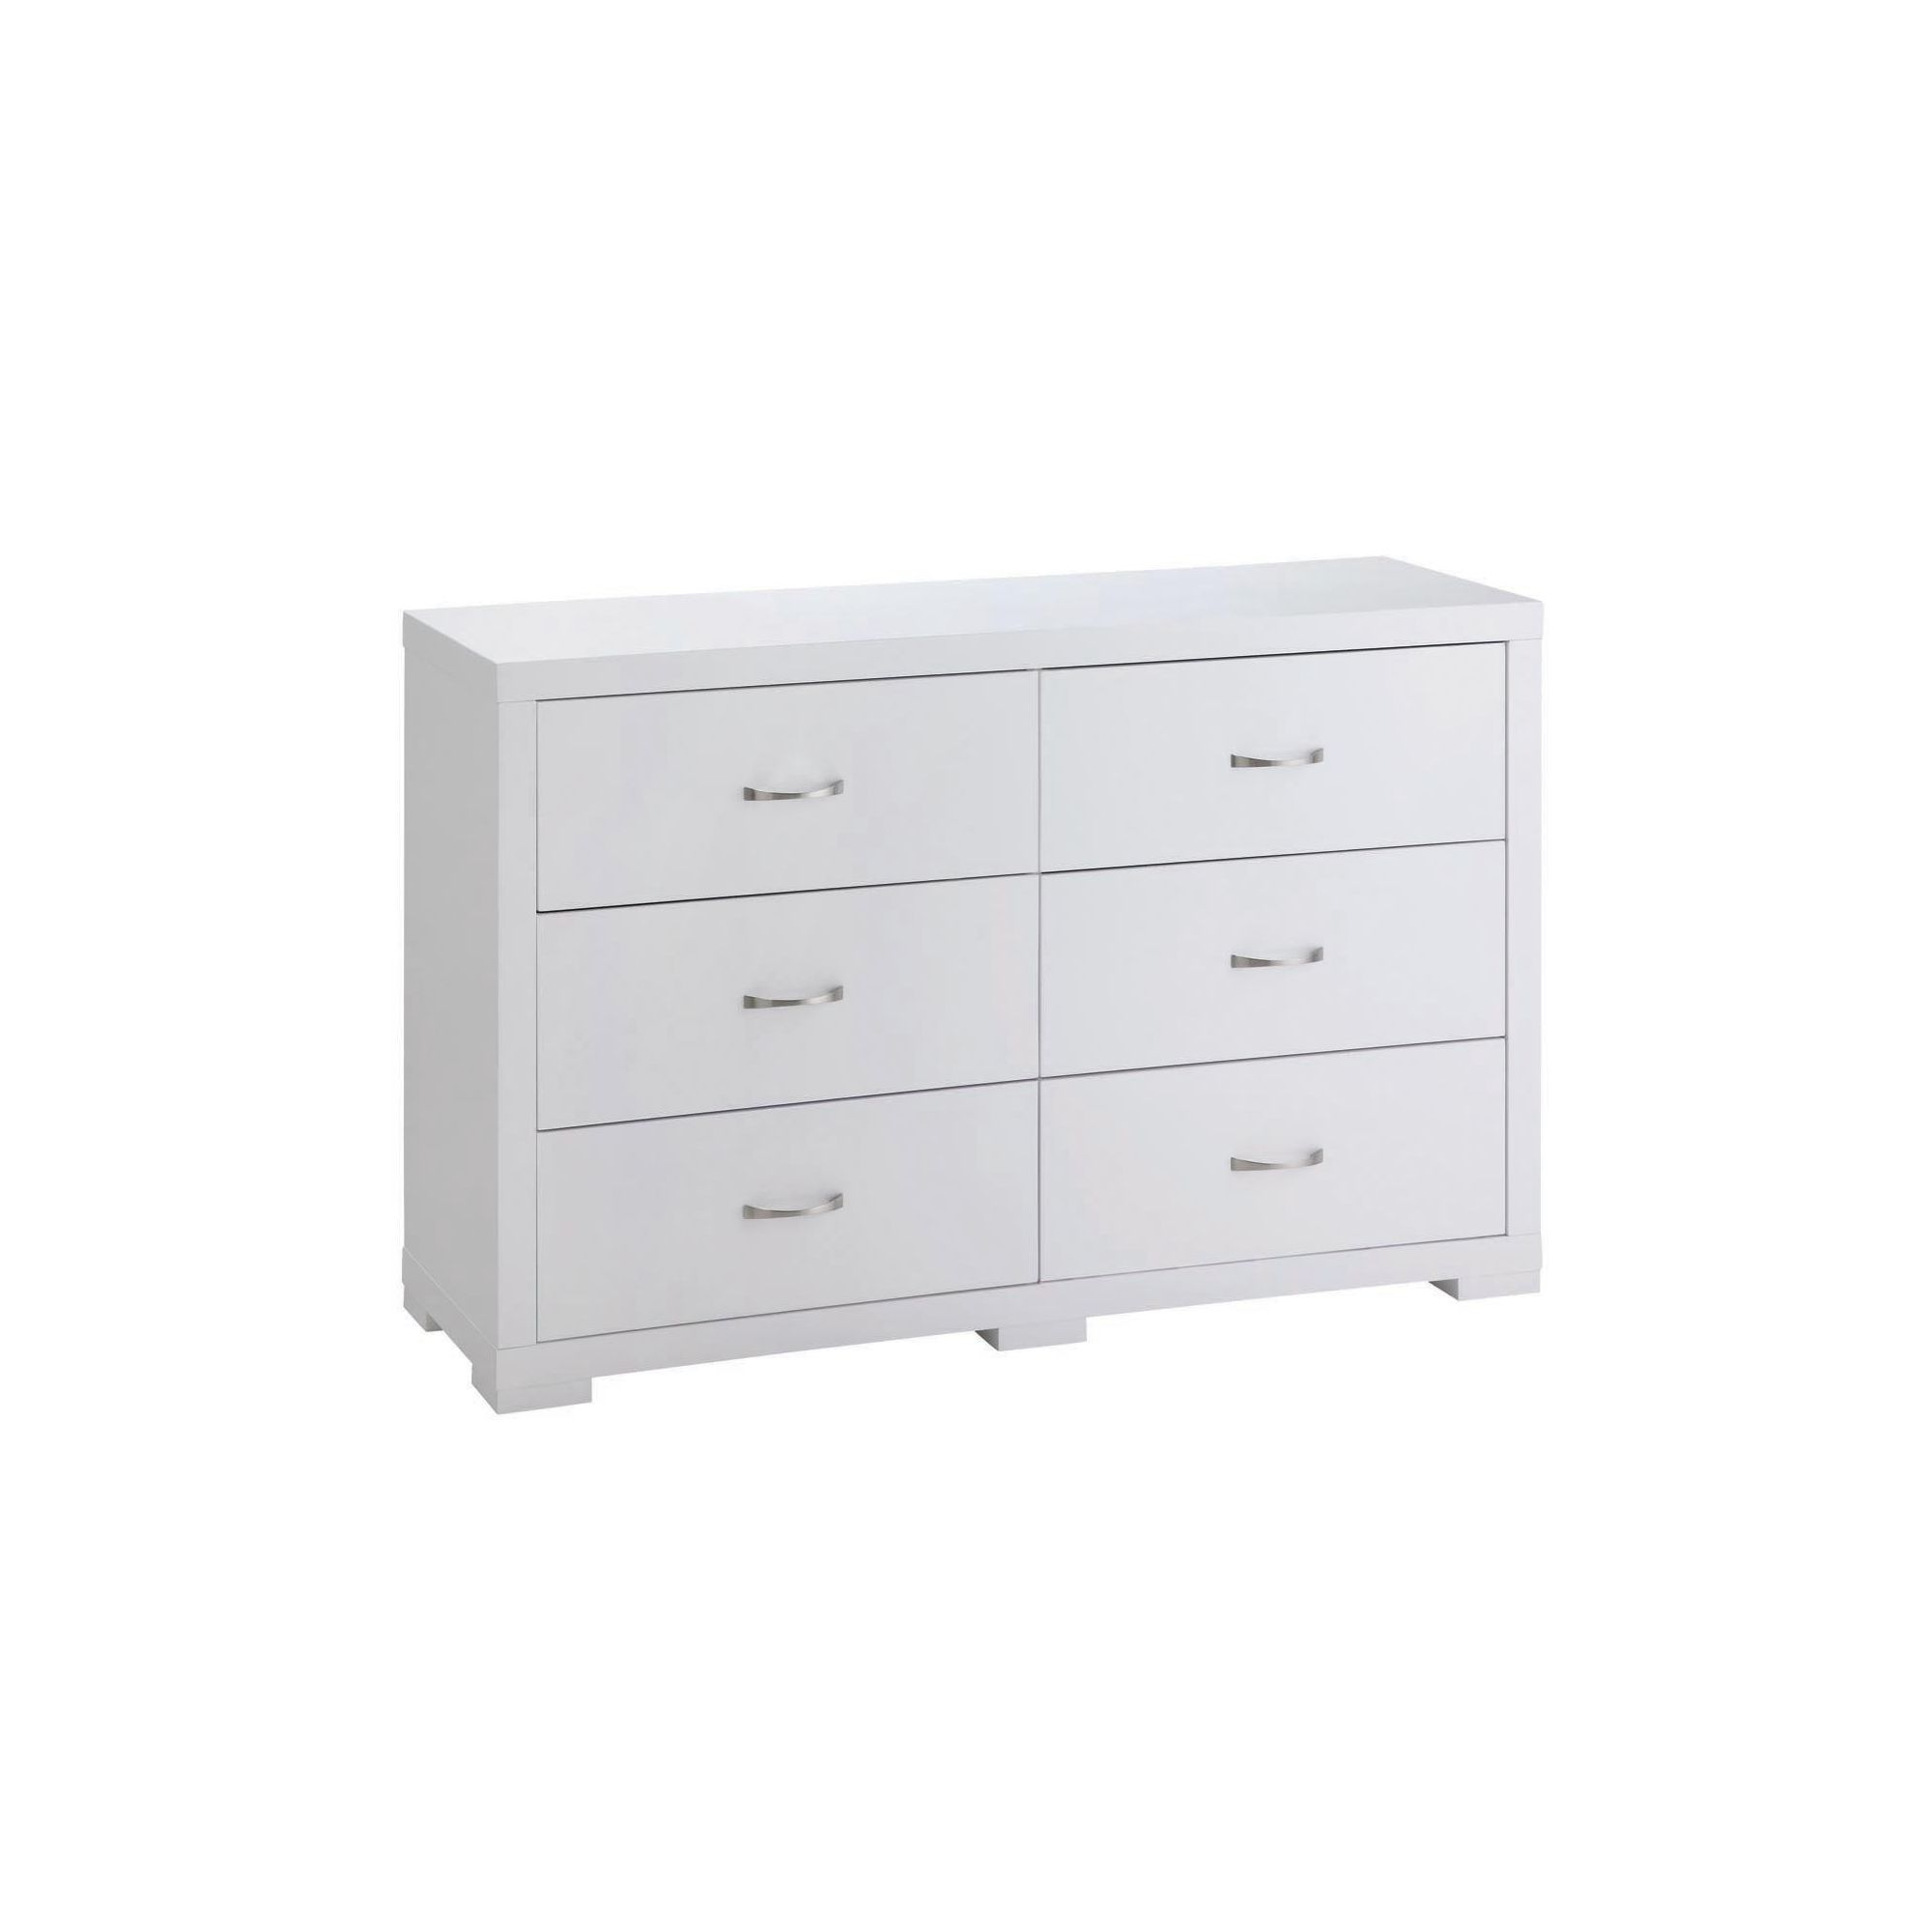 Home Zone Solar 6 Drawer Wide Chest - White at Tesco Direct